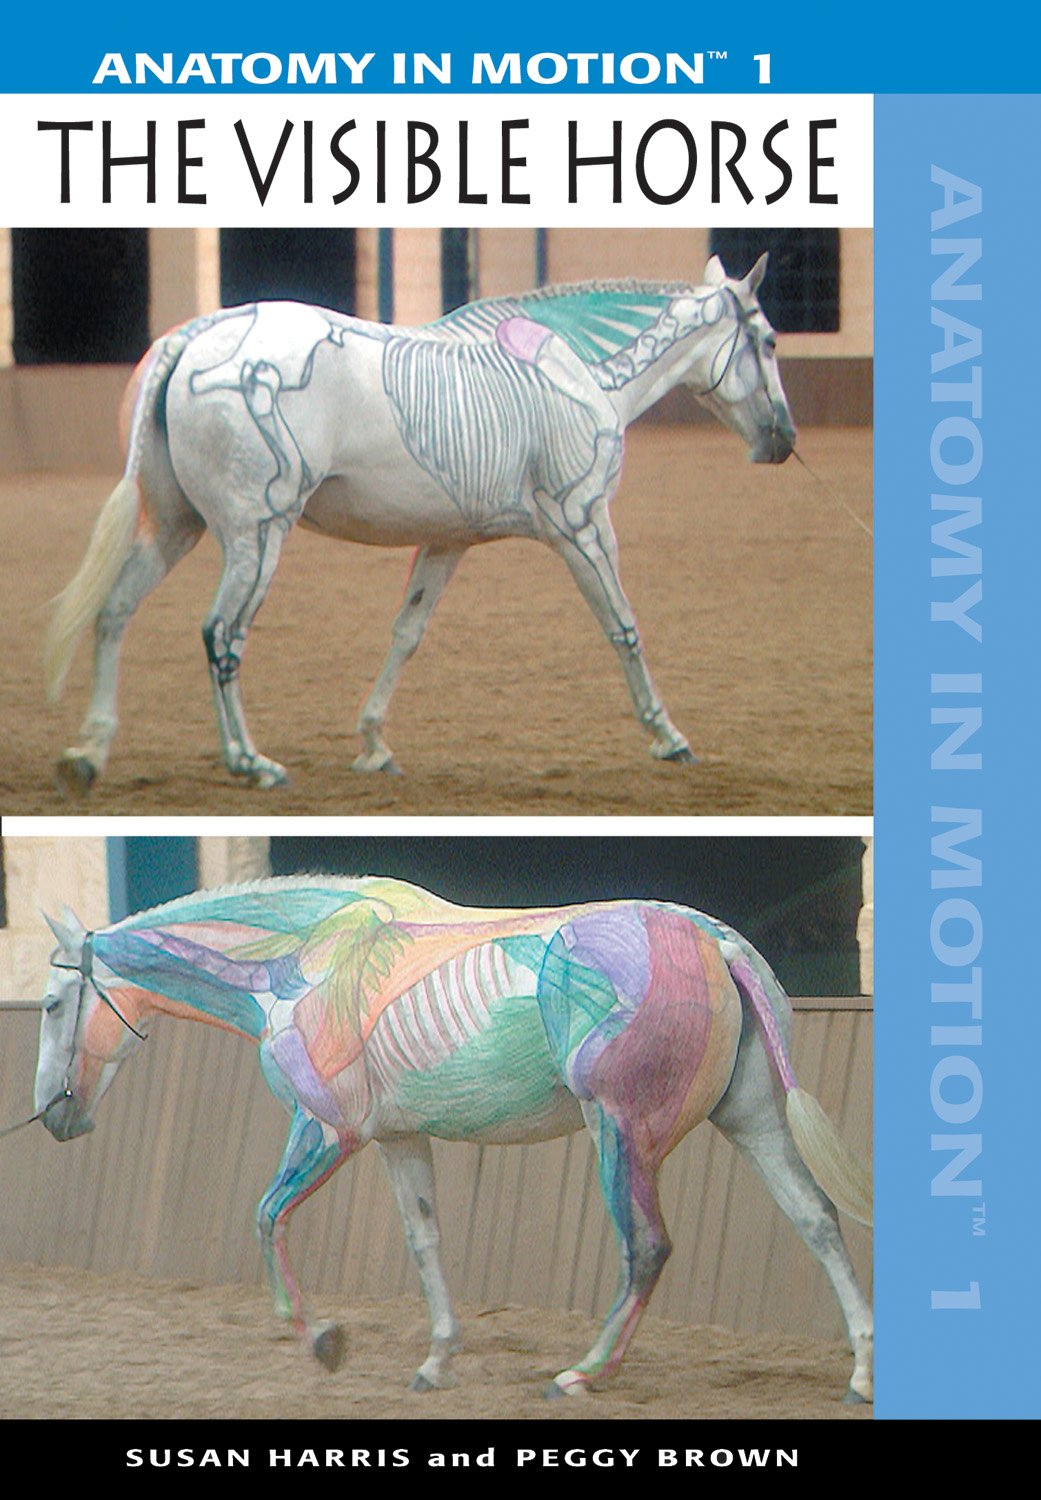 Amazon.com: Anatomy in Motion 1: The Visible Horse: Susan Harris ...